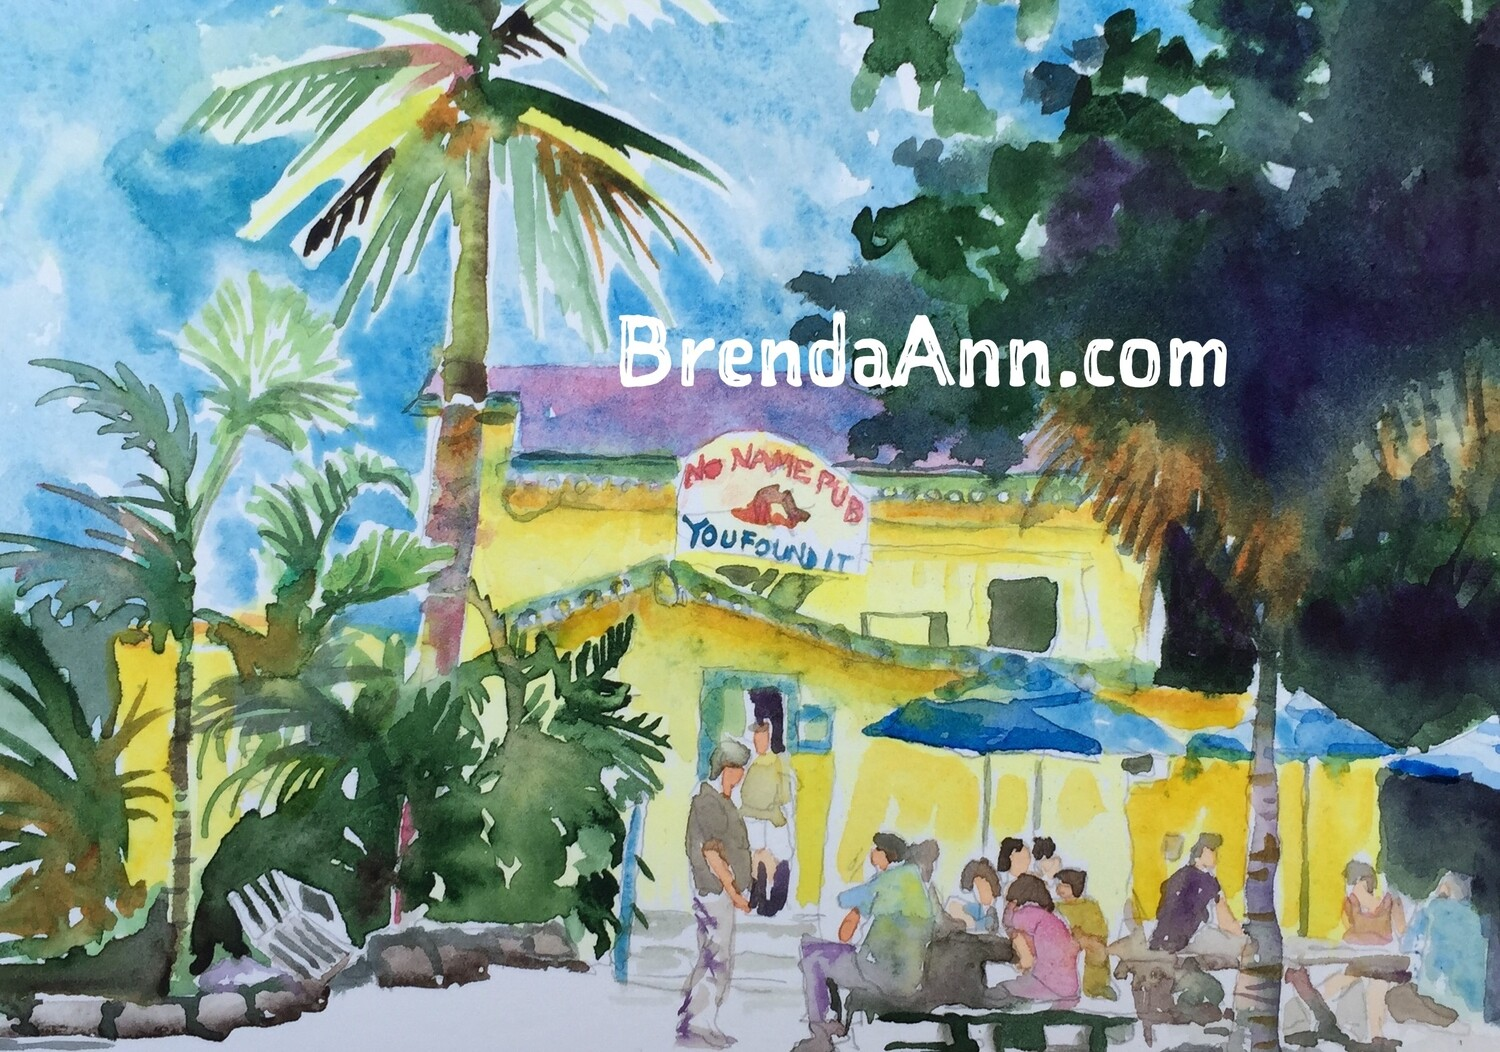 No Name Pub in the Florida Keys - Hand Signed Archival Watercolor Print